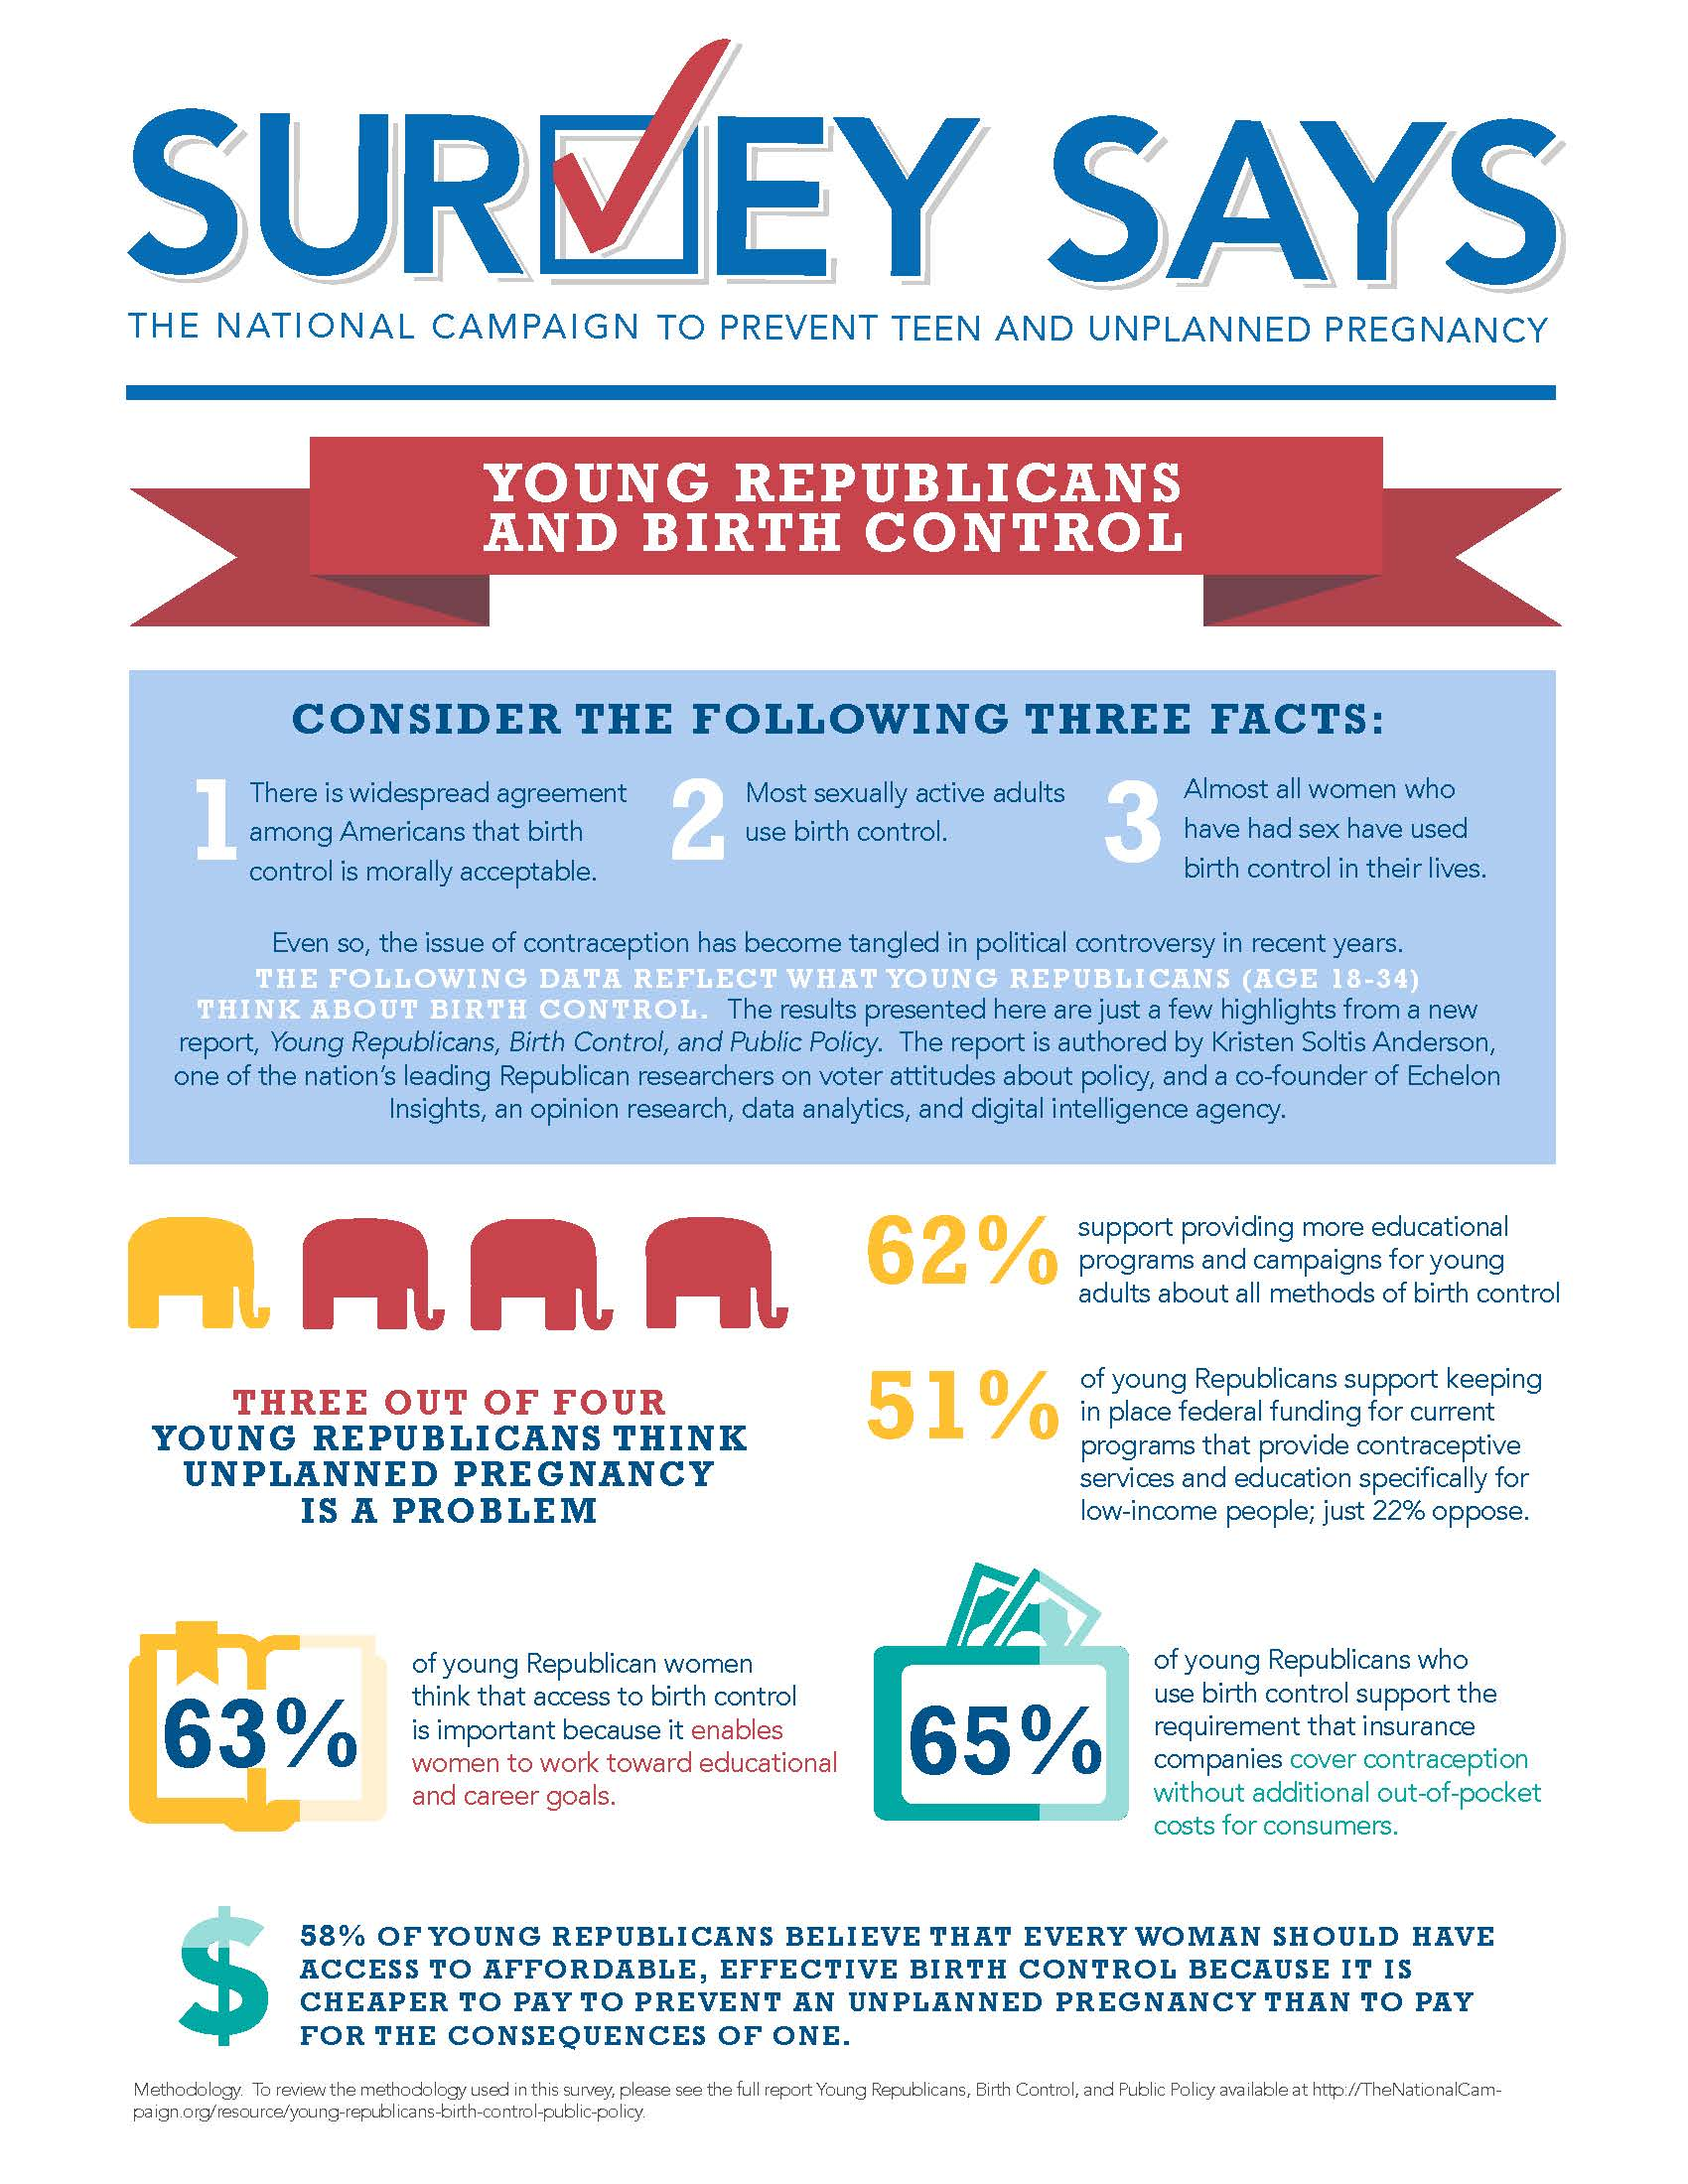 Survey Says: March 2015: Young Republicans and Birth Control